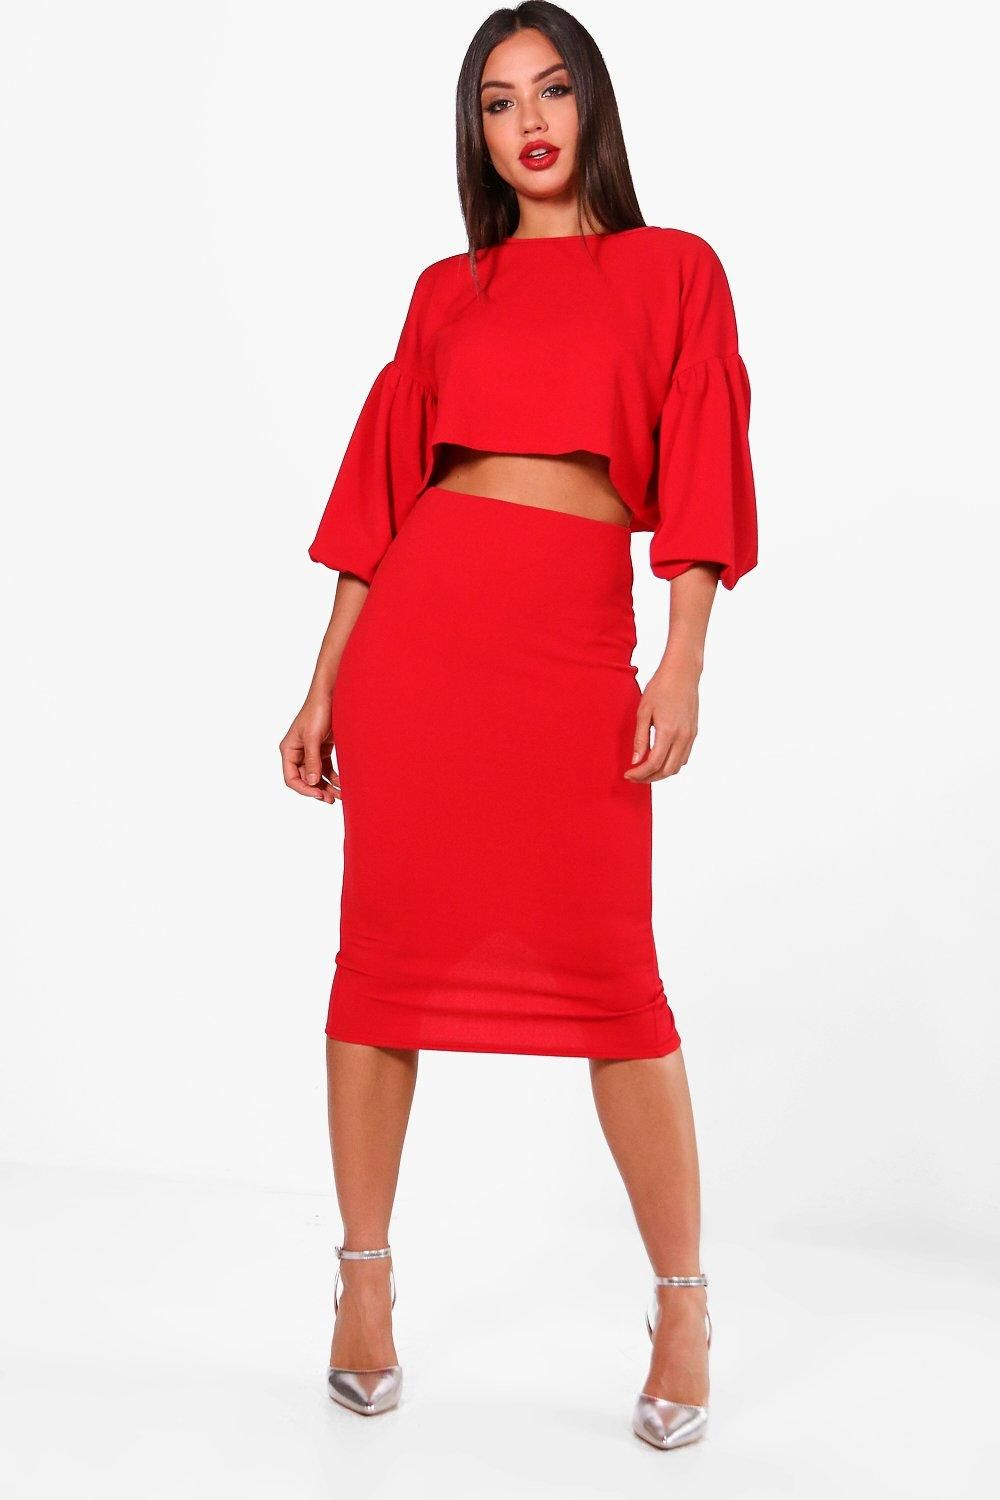 1f7b0ccb94f Puff Ball Sleeve Top and Midi Skirt Set | Wish List. Want List ...